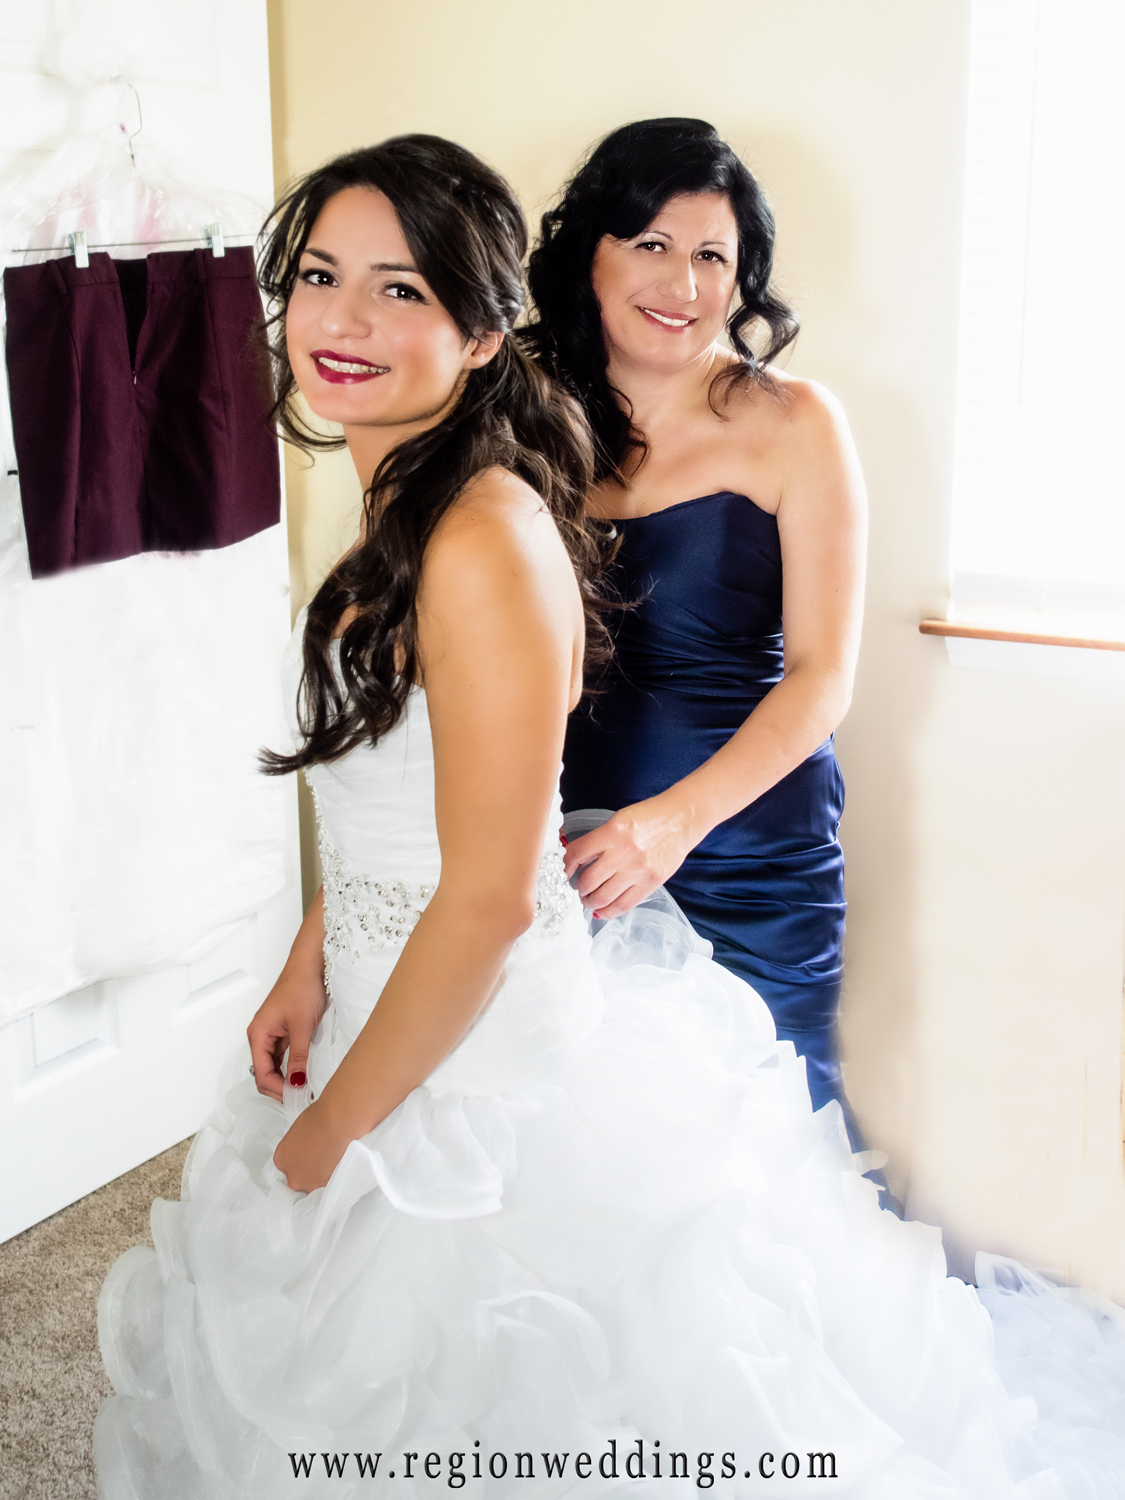 The mother of the bride laces up her dress on wedding day.